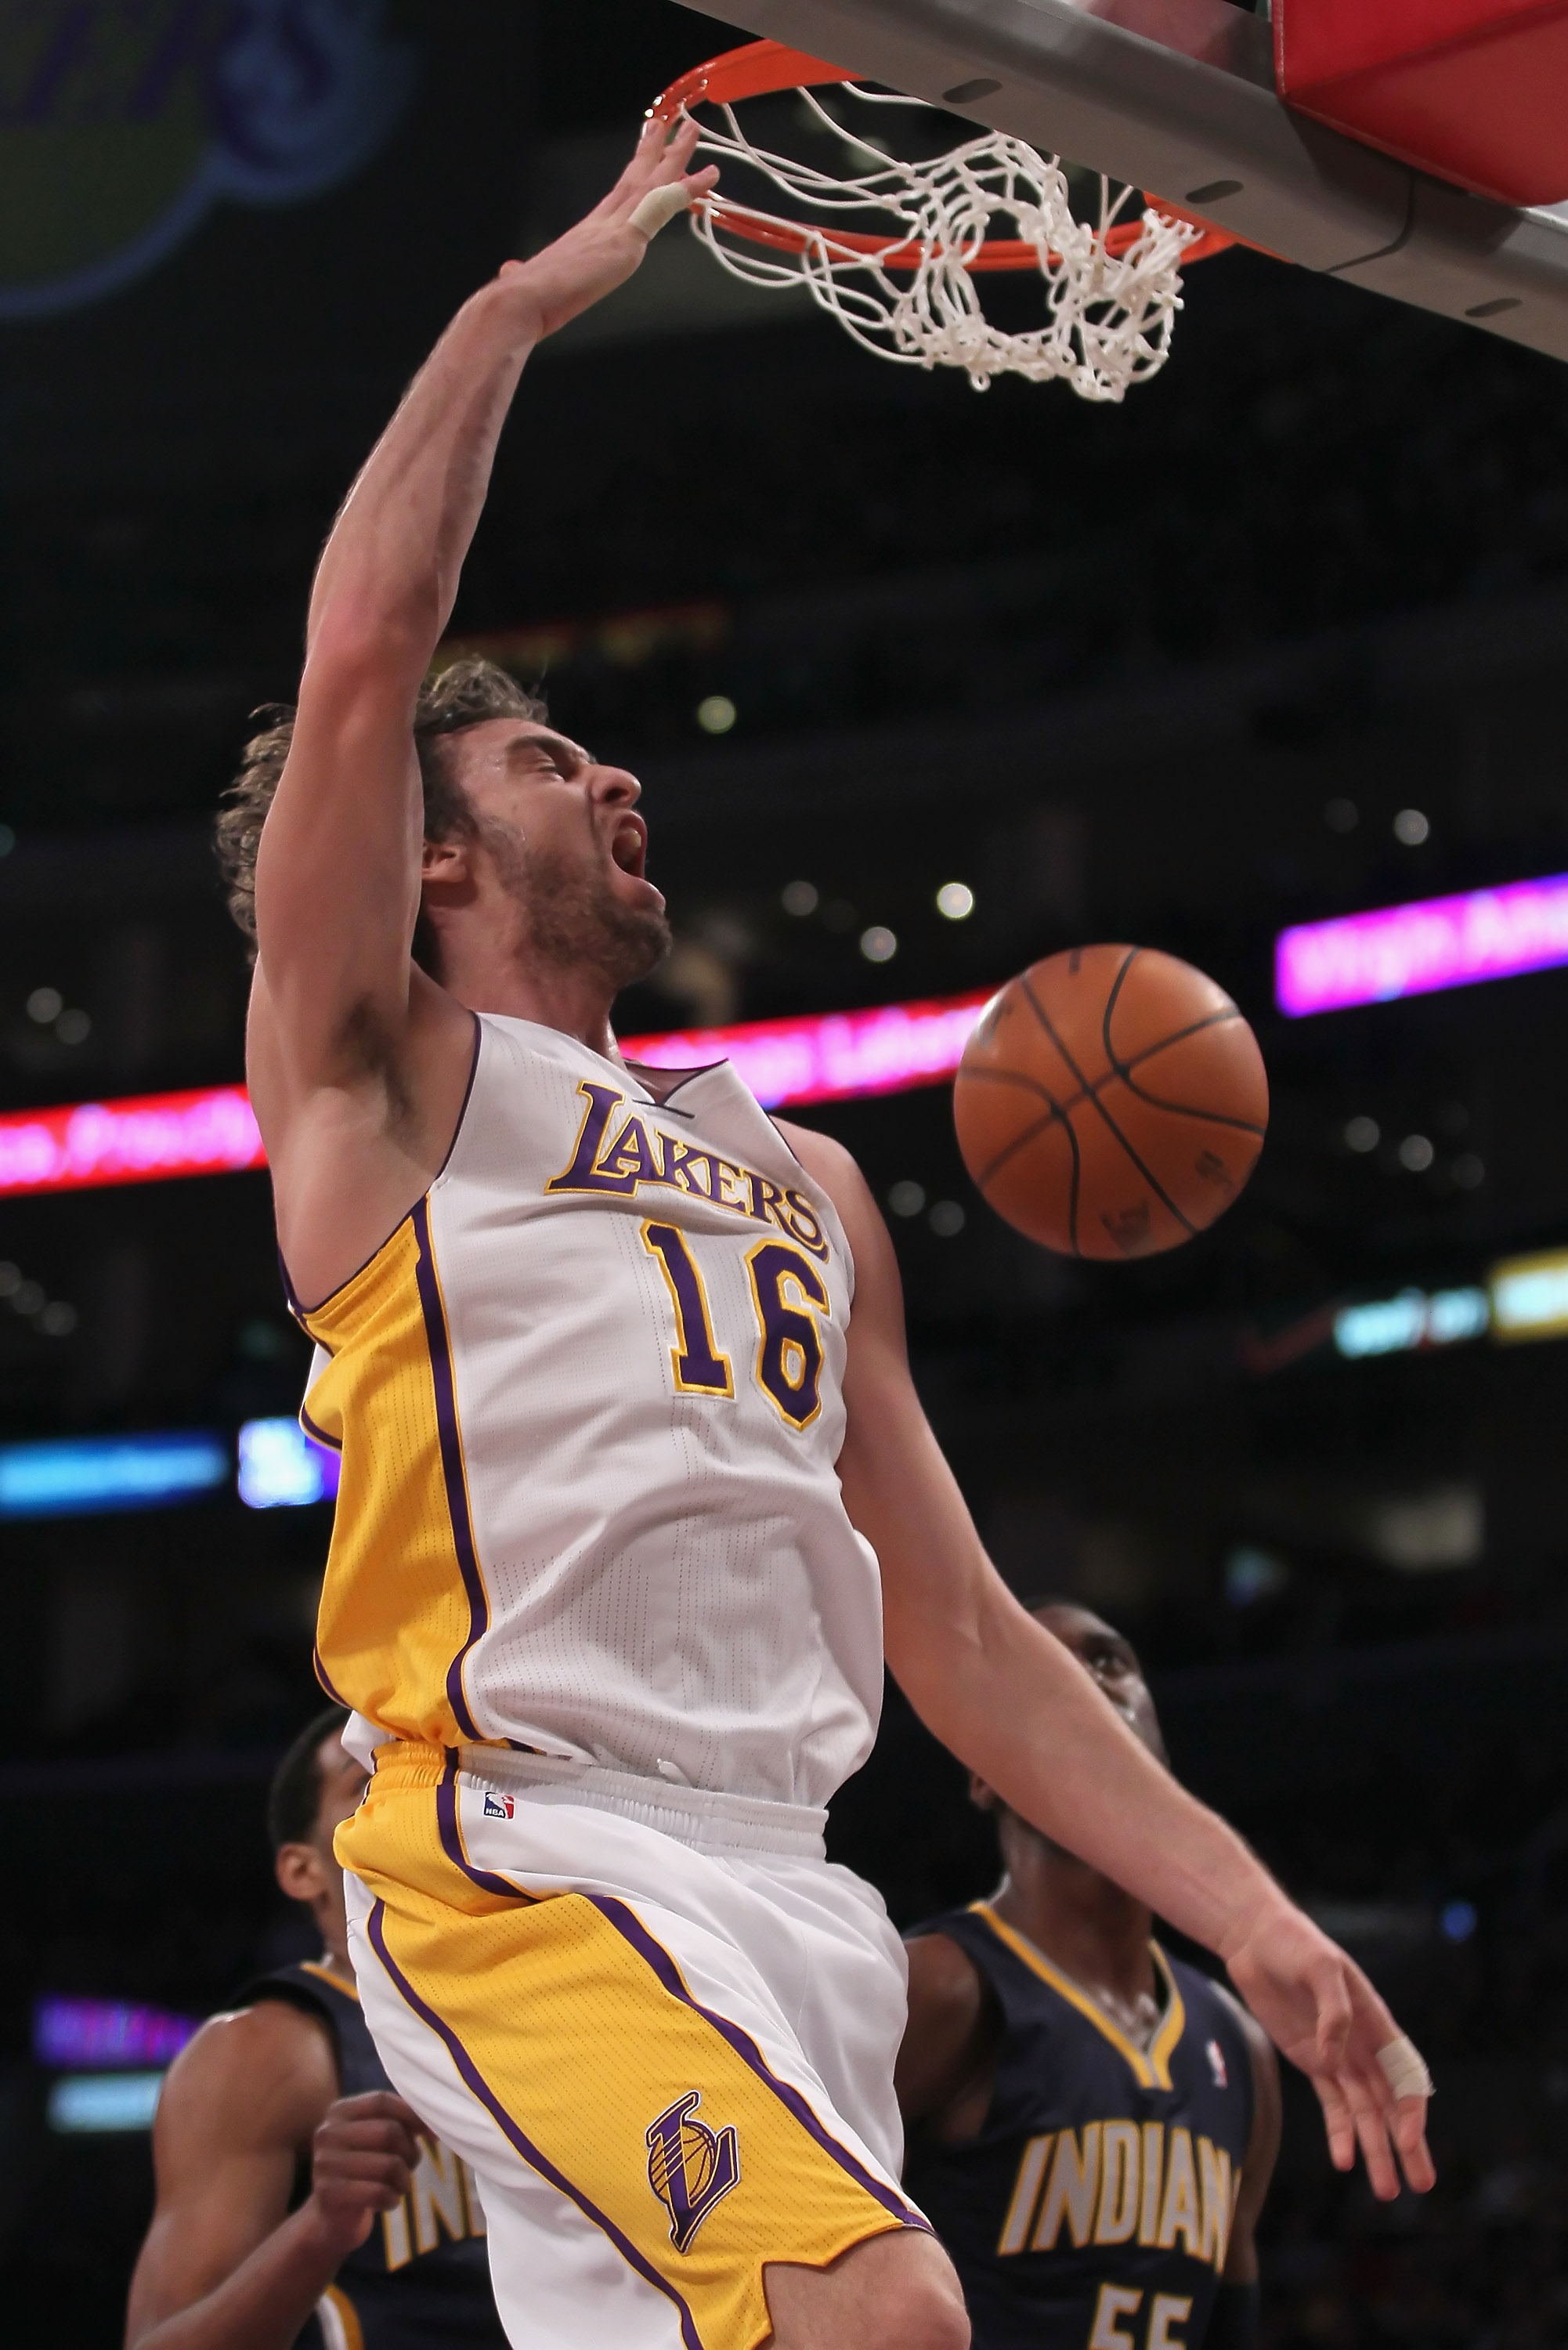 LOS ANGELES, CA - NOVEMBER 28:  Pau Gasol #16 of the Los Angeles Lakers dunks the ball against the Indiana Pacers during the first quarter at Staples Center on November 28, 2010 in Los Angeles, California. NOTE TO USER: User expressly acknowledges and agr